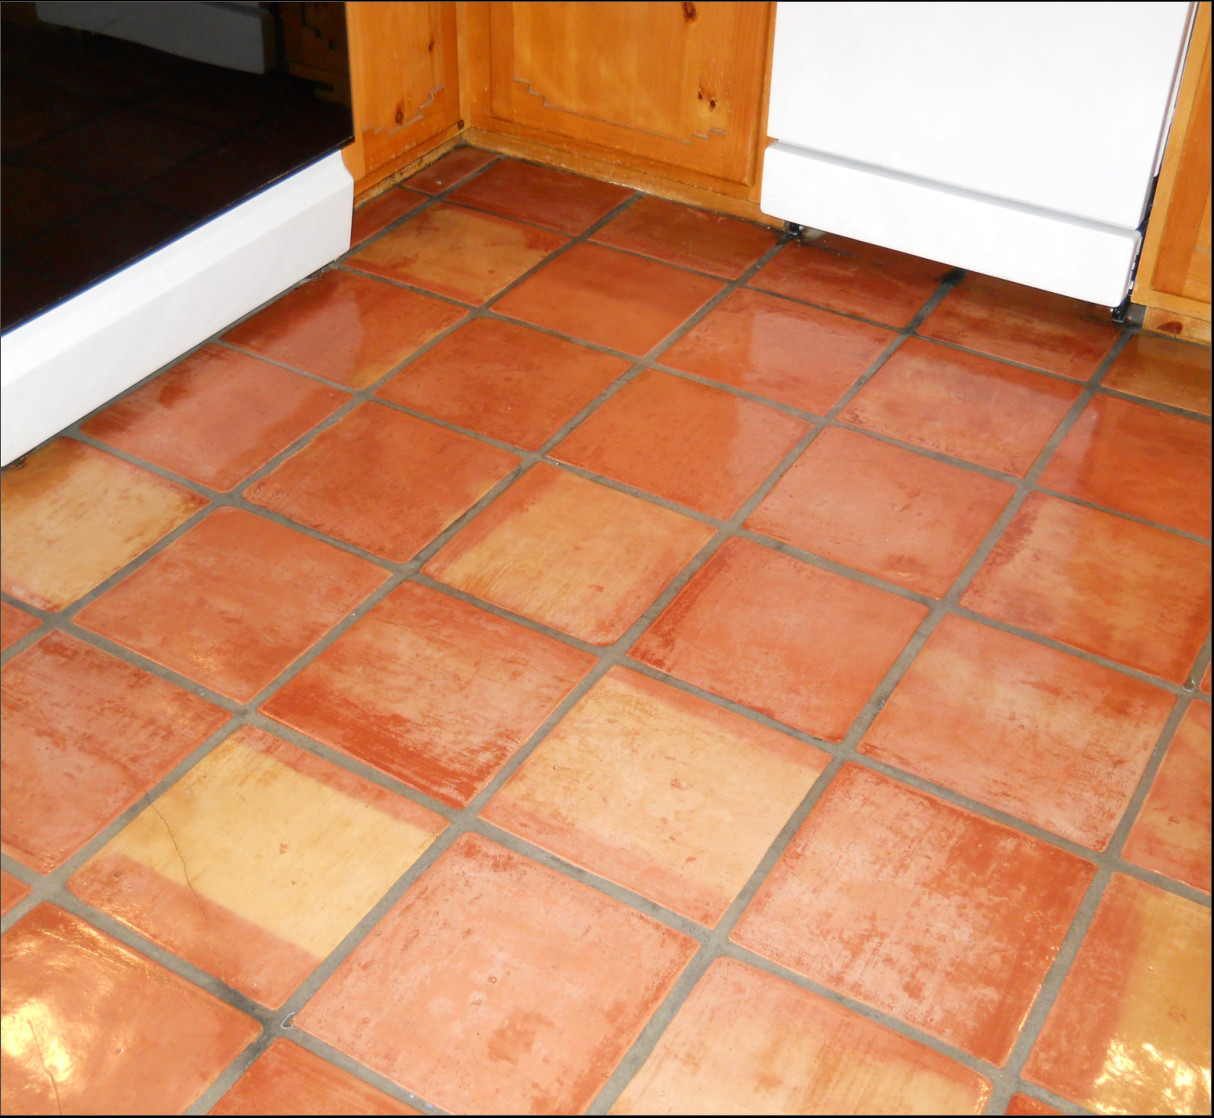 Hardwood Floor Refinishing Albuquerque Nm Of Salillo Mexican Tile Cleaning Sealing Stripping Refinishing Regarding Stone Grout Meister Llc 2006 2018